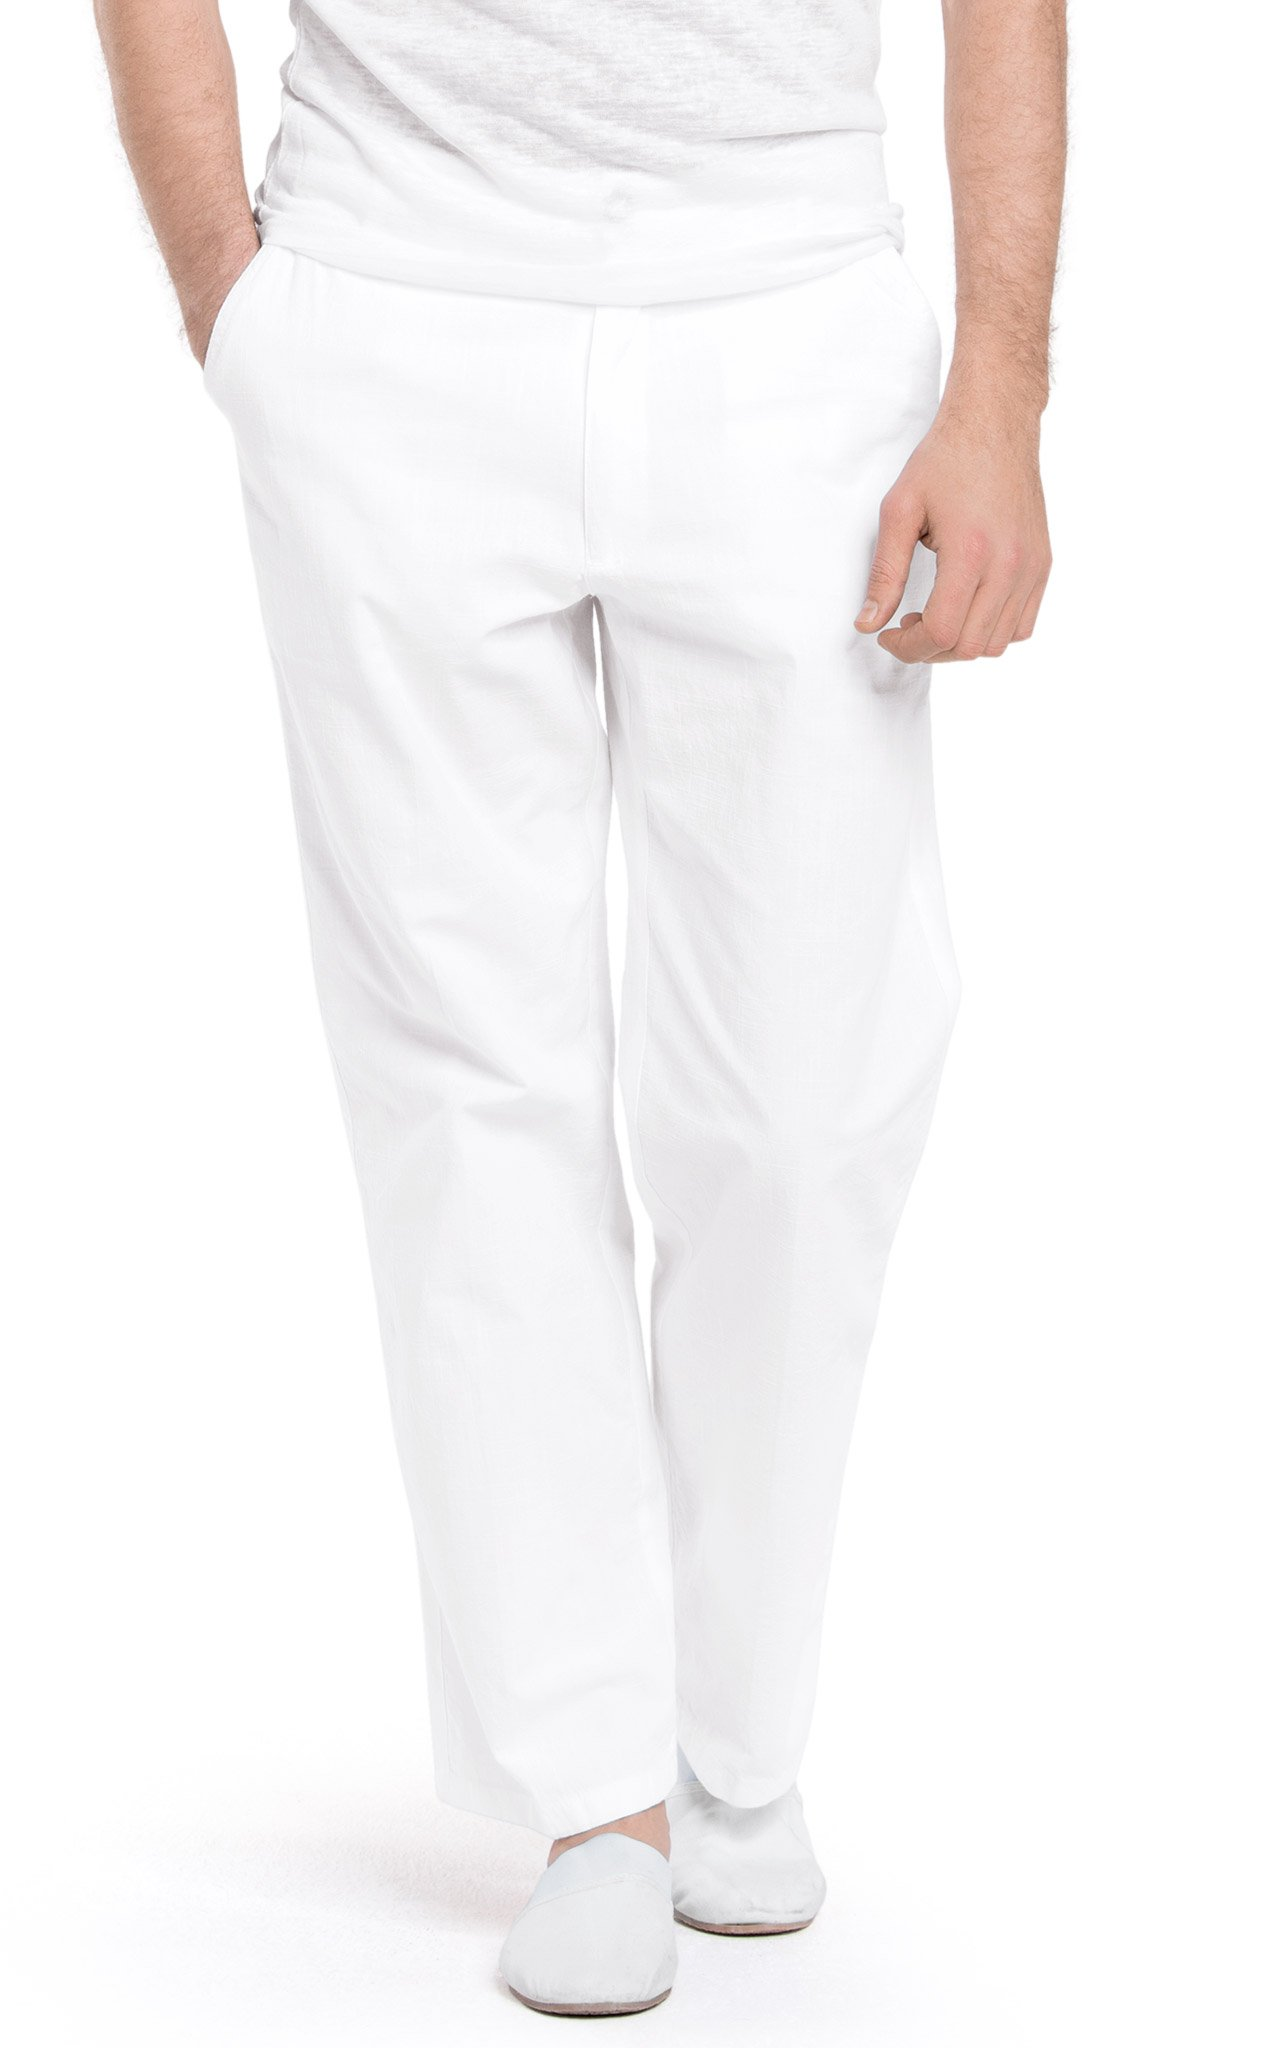 White by Nature Men's Relaxed Casual Cotton Beach Pants XL